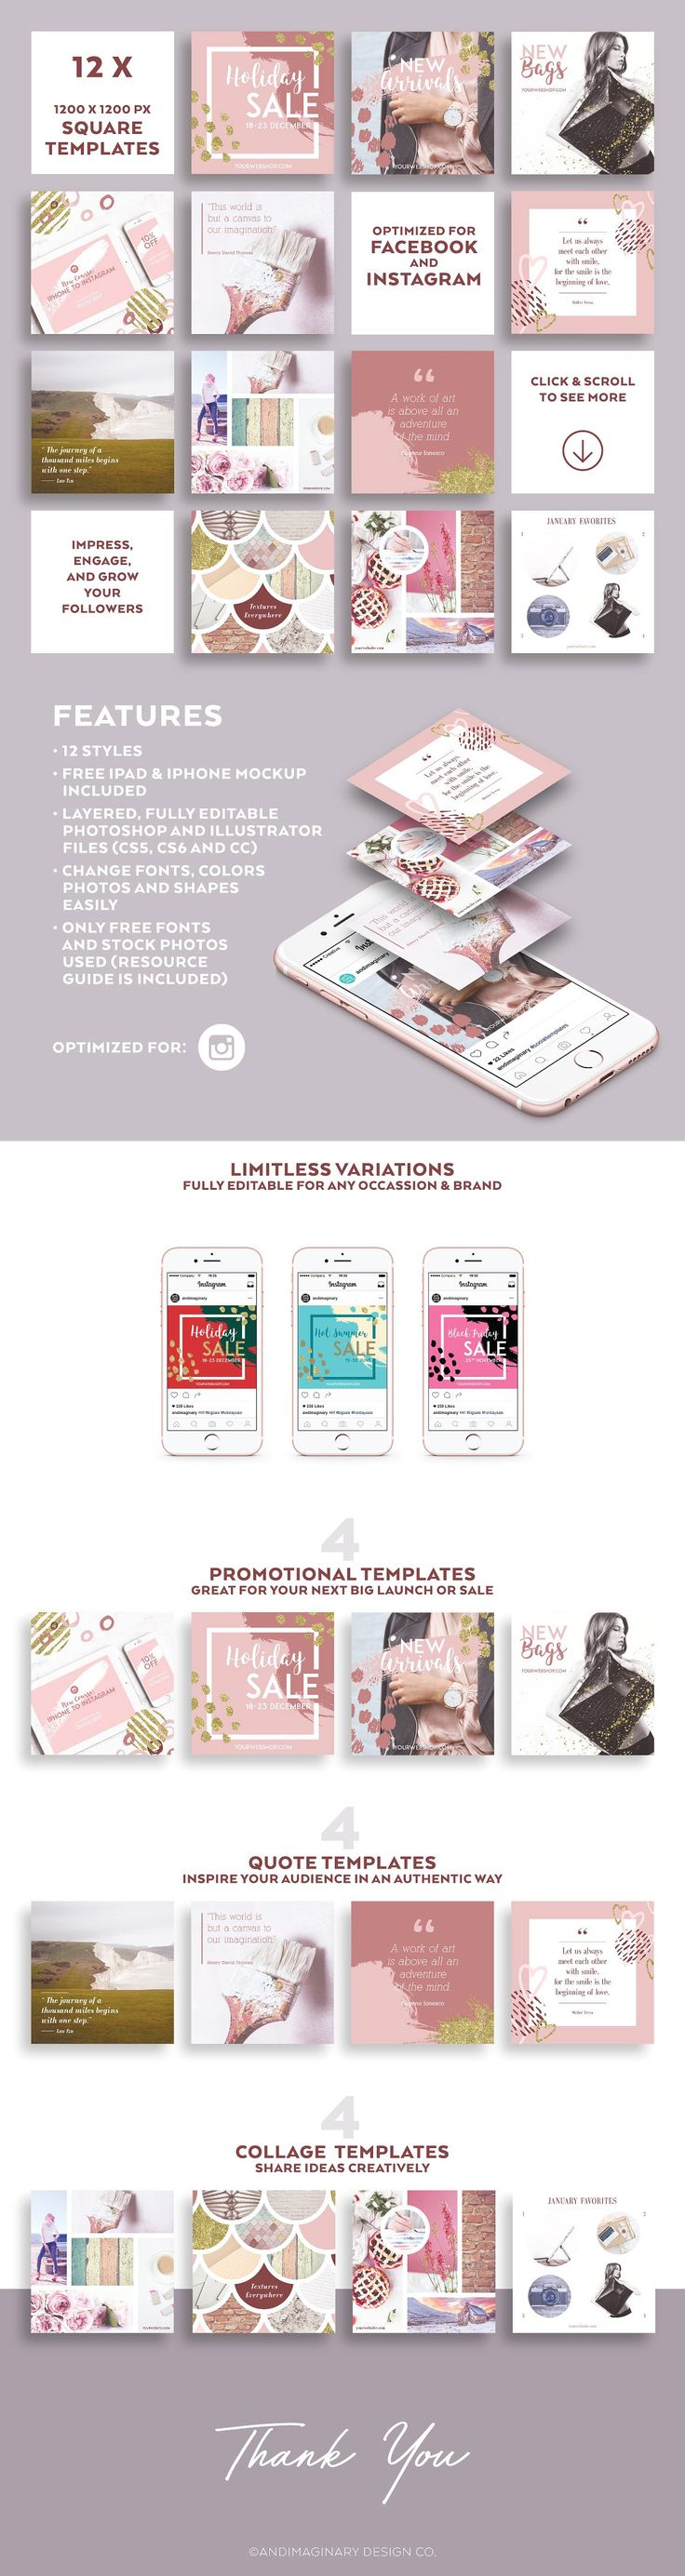 Dusty Pink INSTAGRAM BANNER Pack by Andimaginary Design Co. on @creativemarket